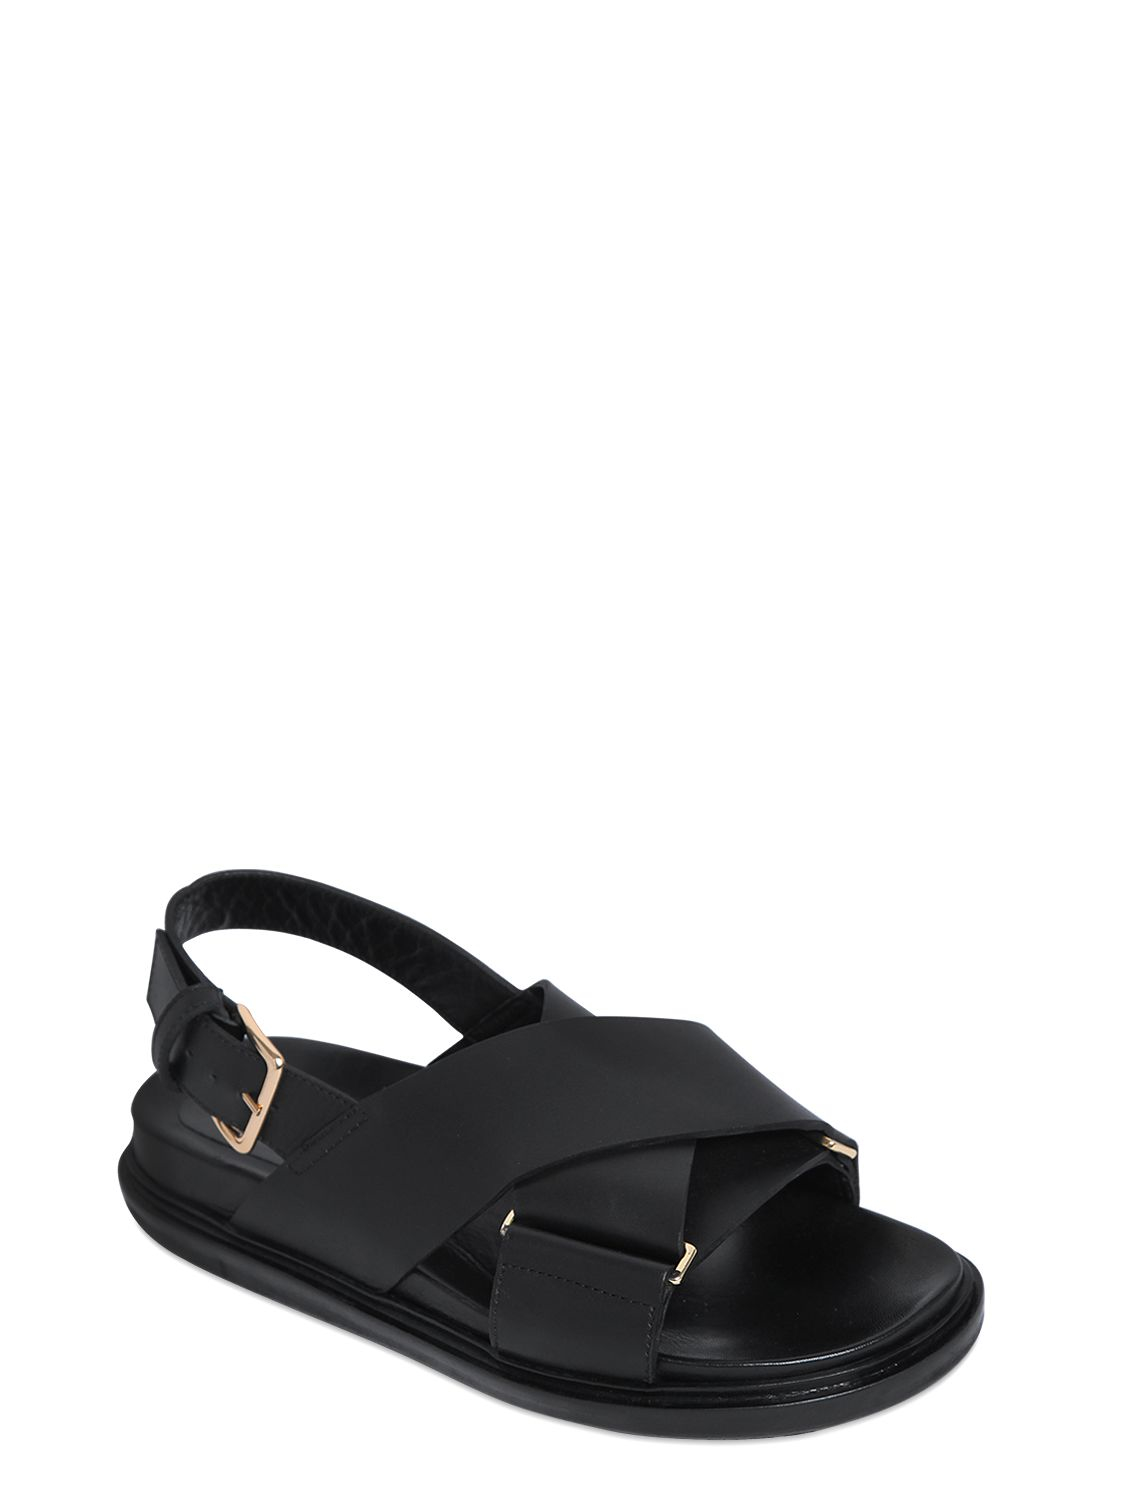 Marni 30MM CRISSCROSS LEATHER SANDALS iezO2zBqRT